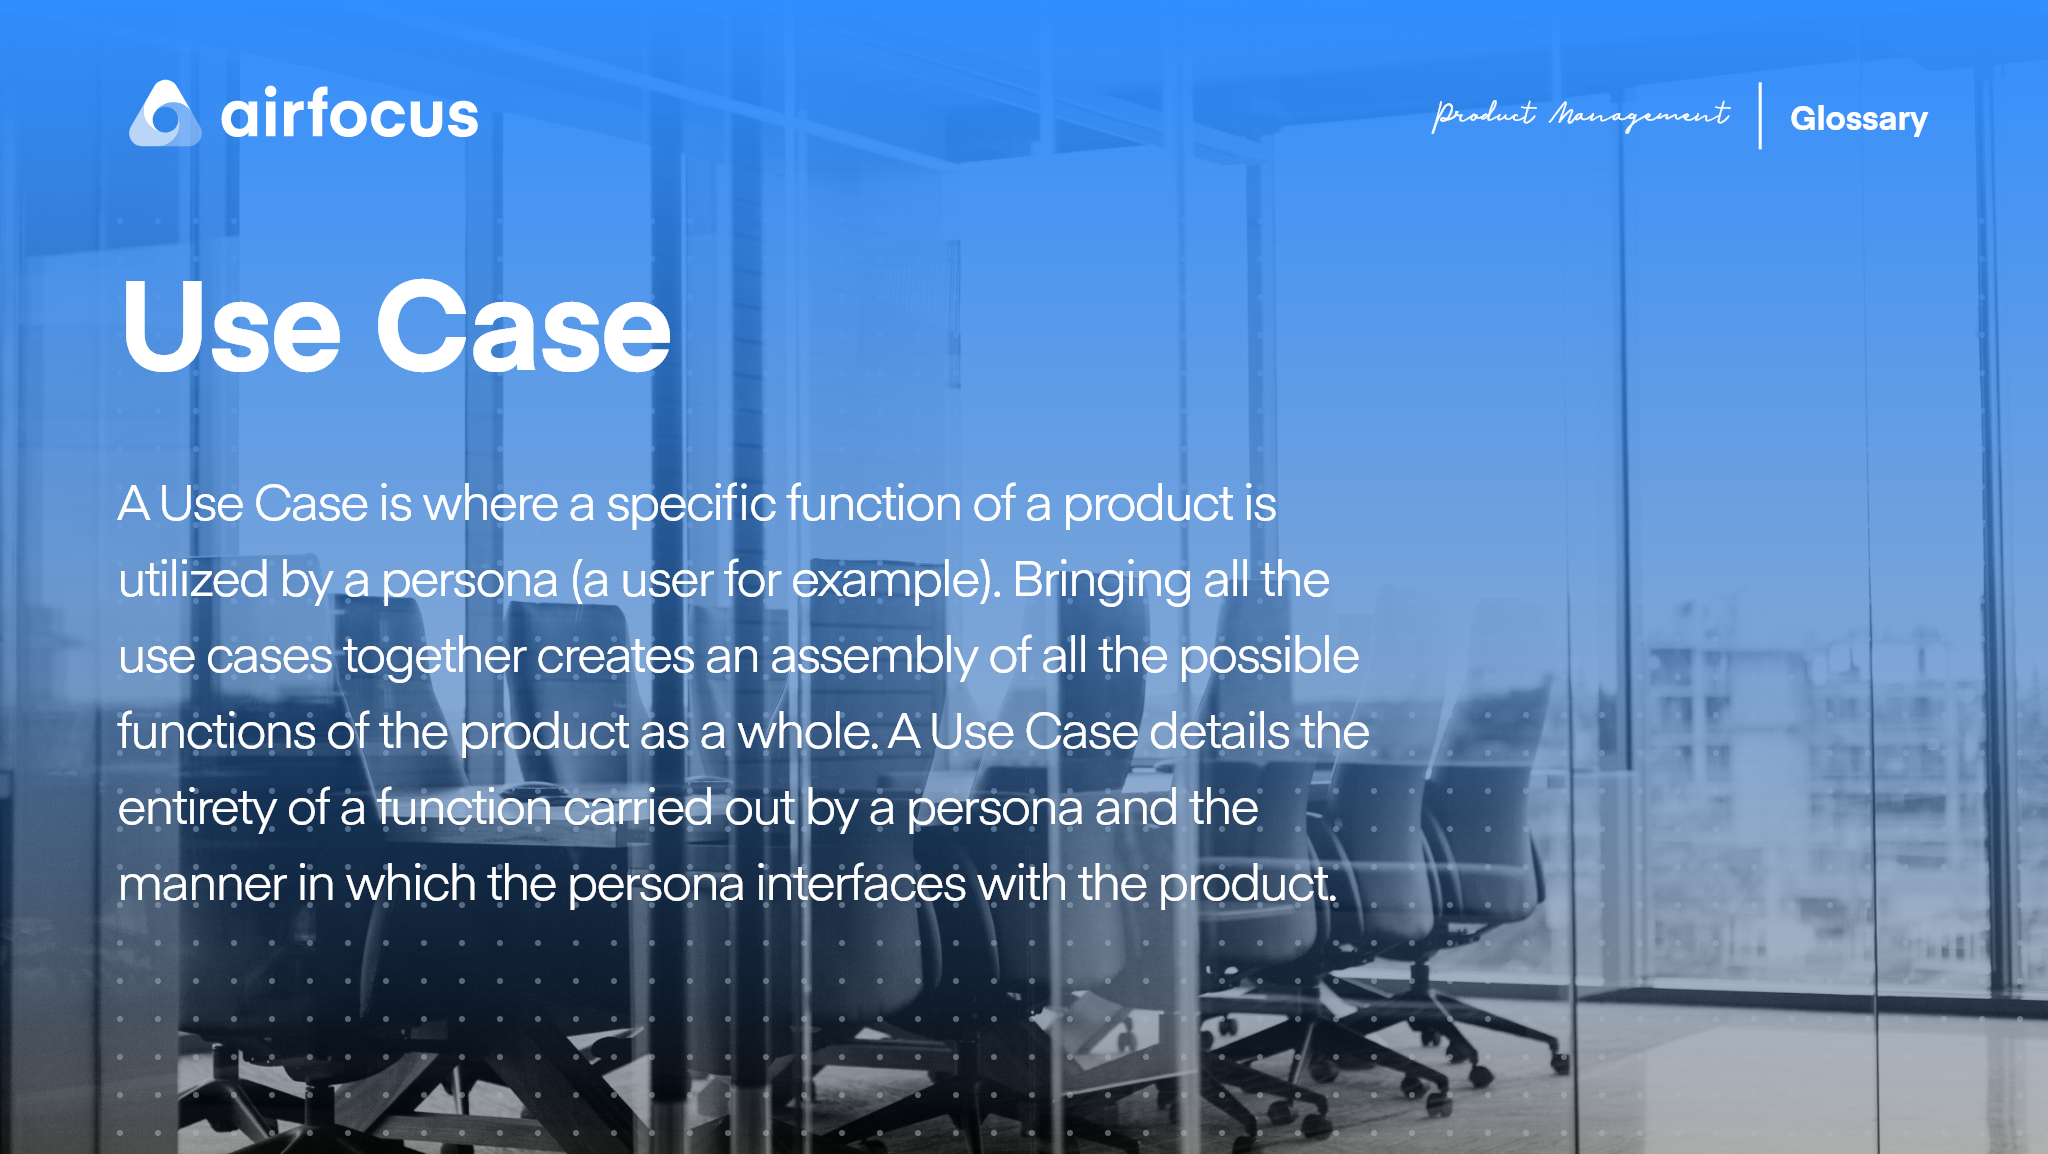 What is a Use Case?